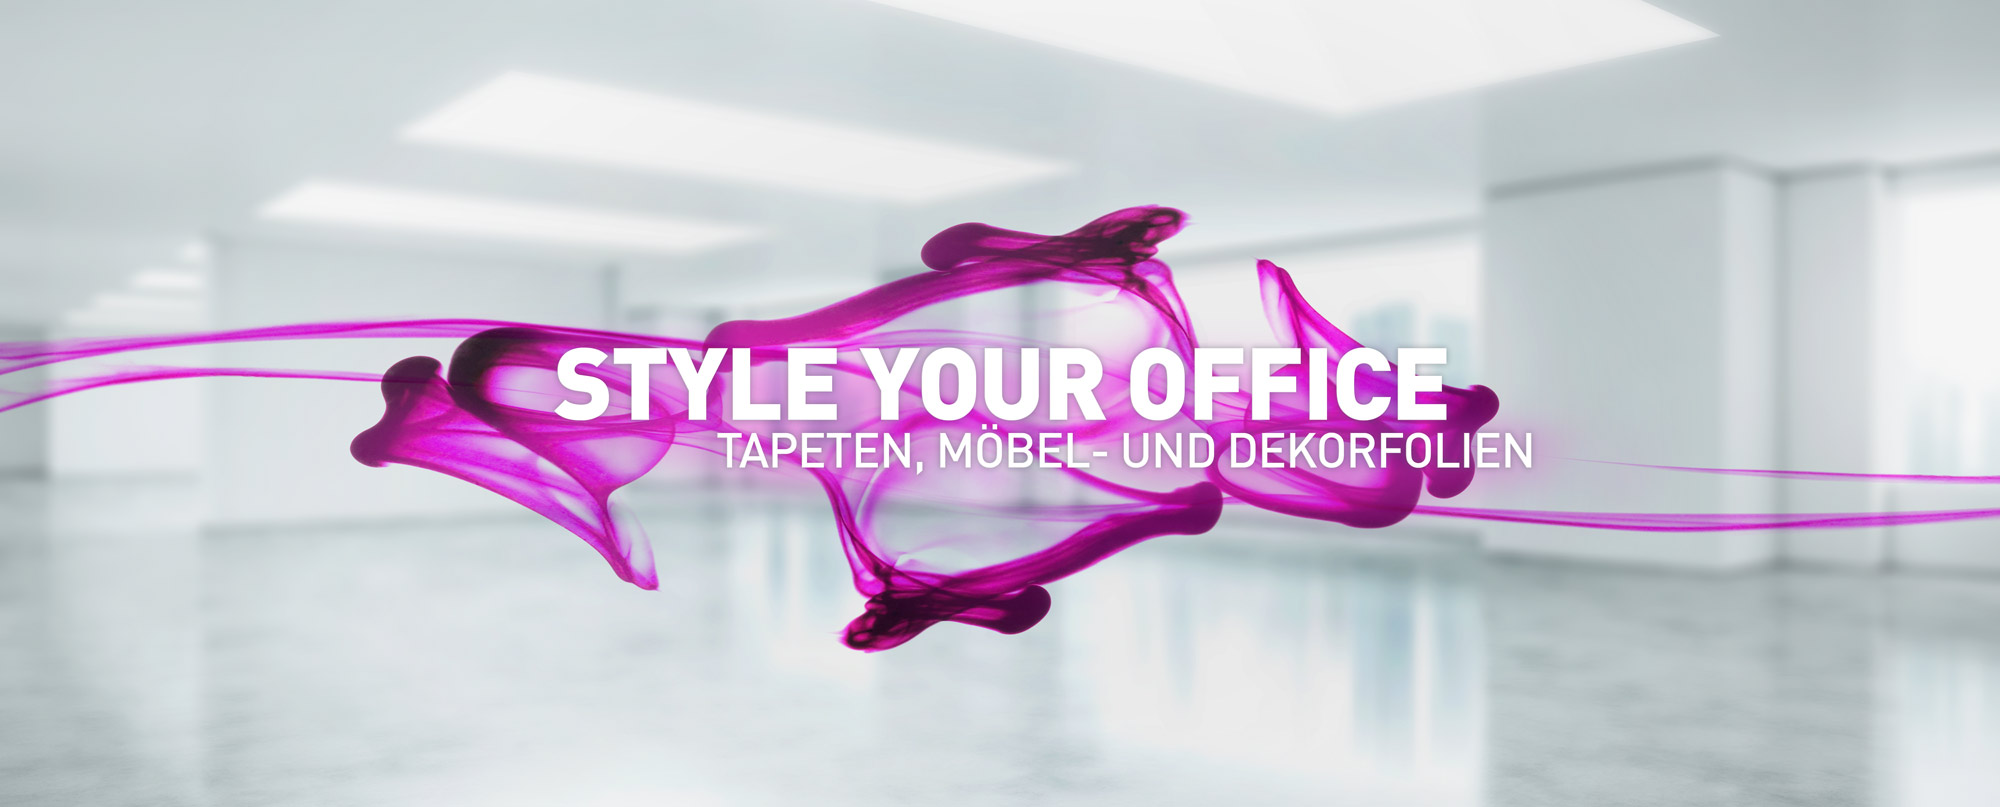 Style your office